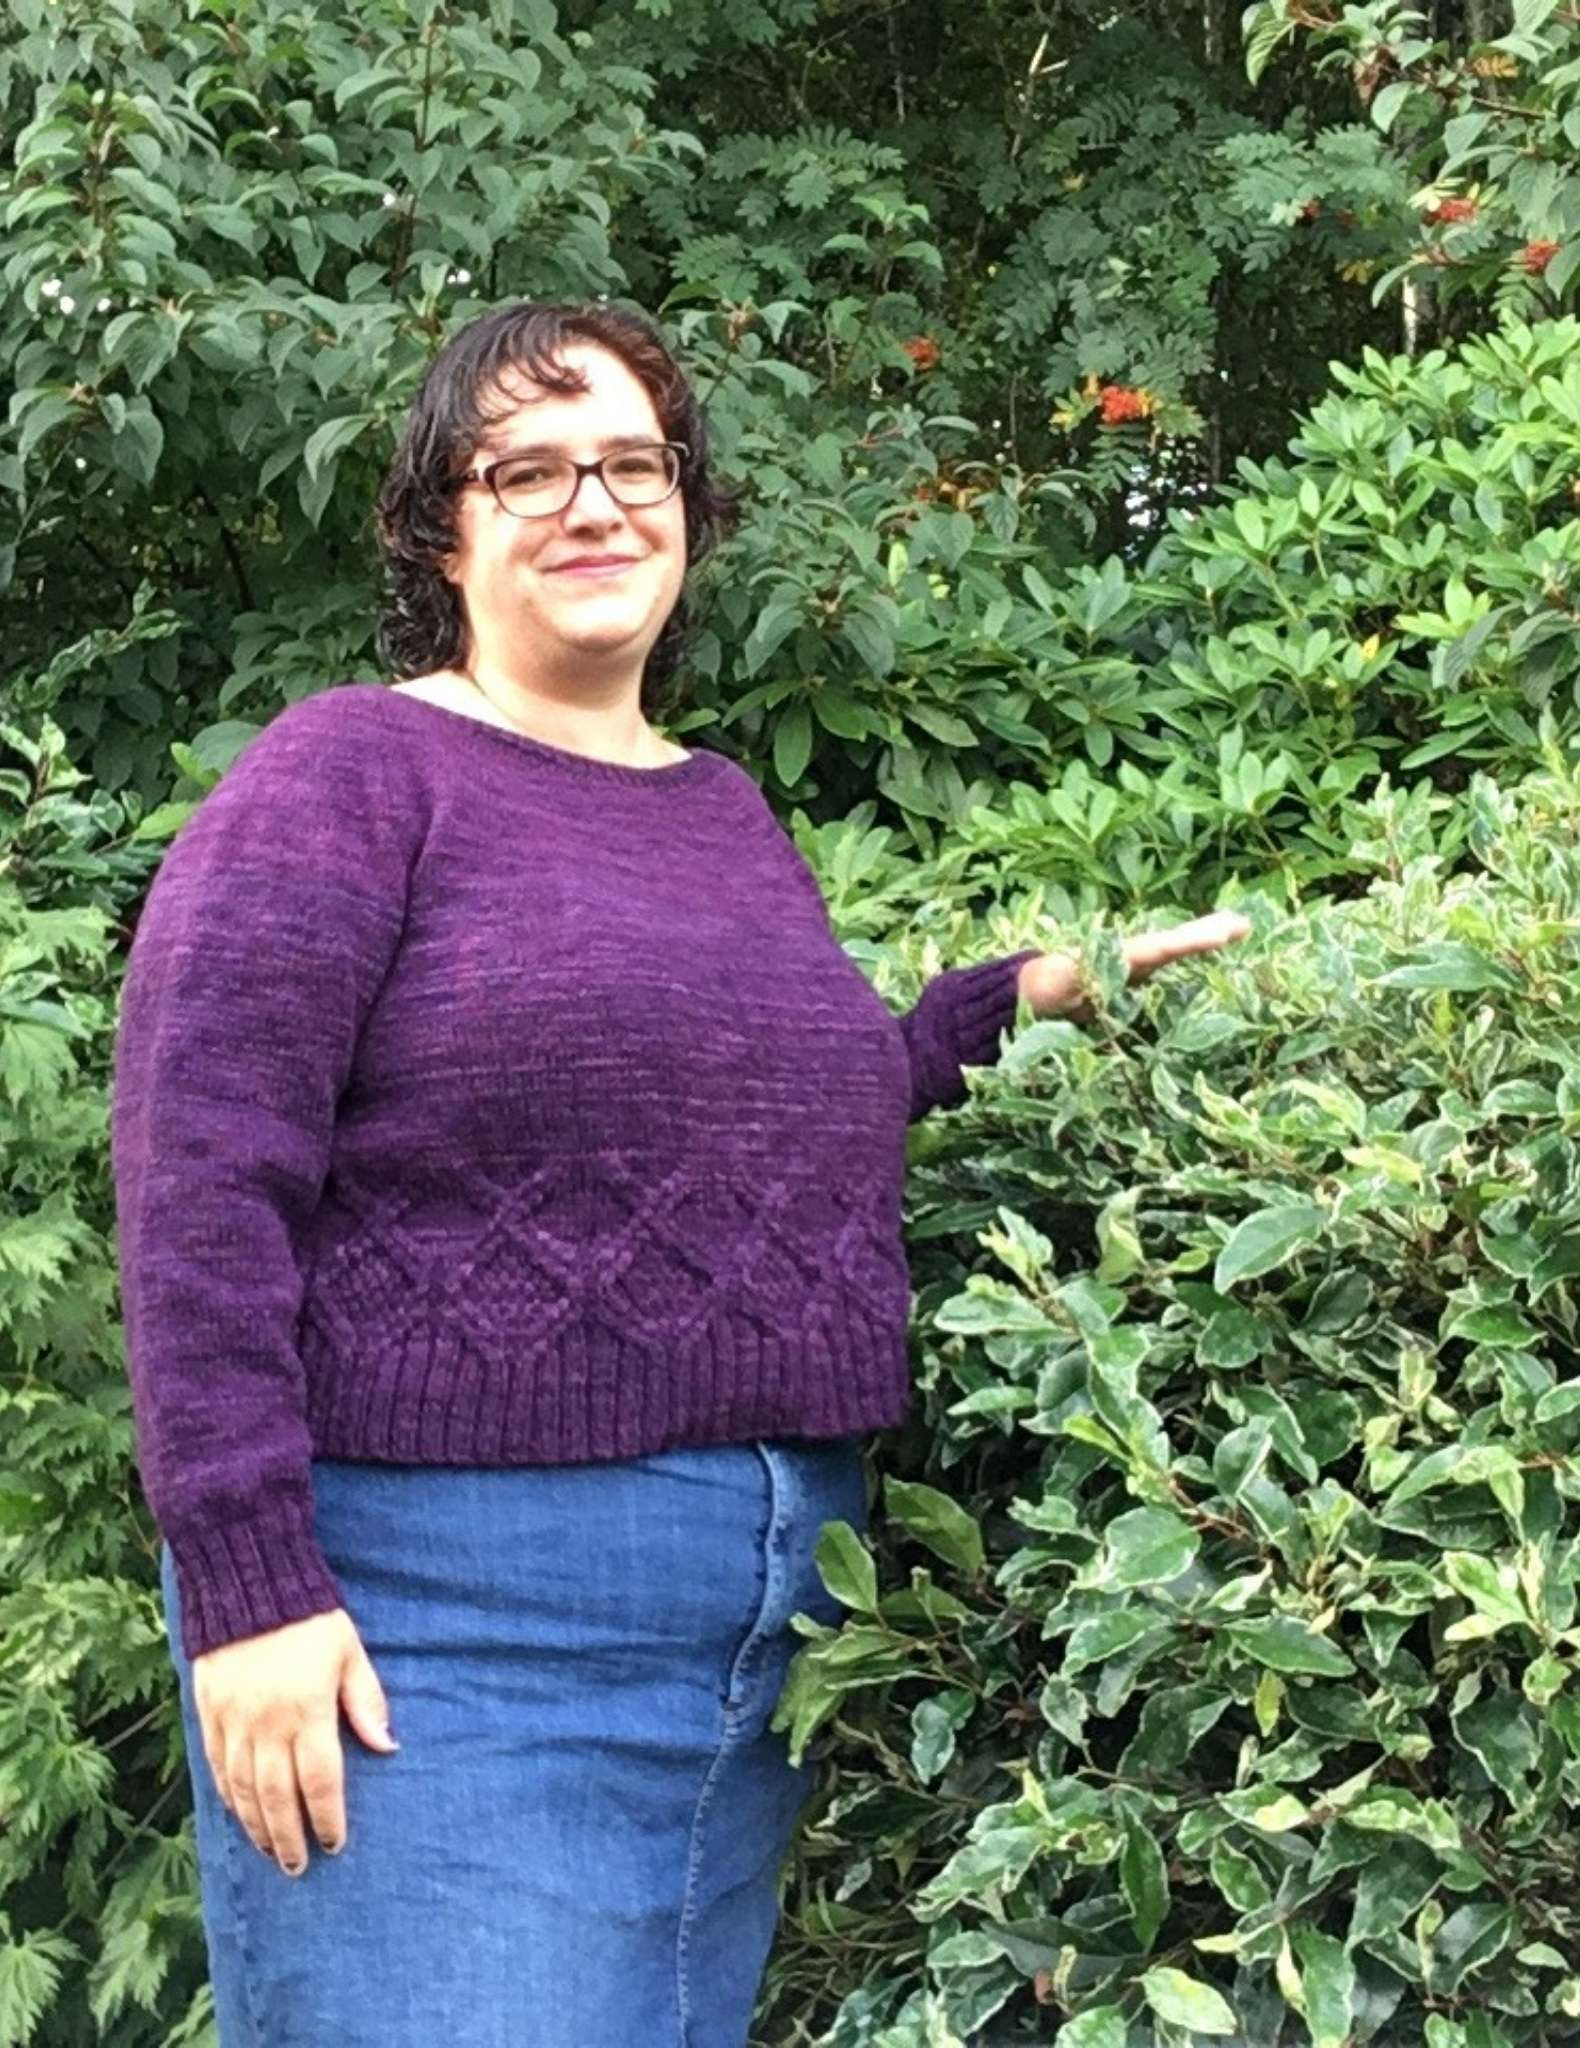 a model with dark hair wearing a purple sweater, standing in front of a bush with one arm raised